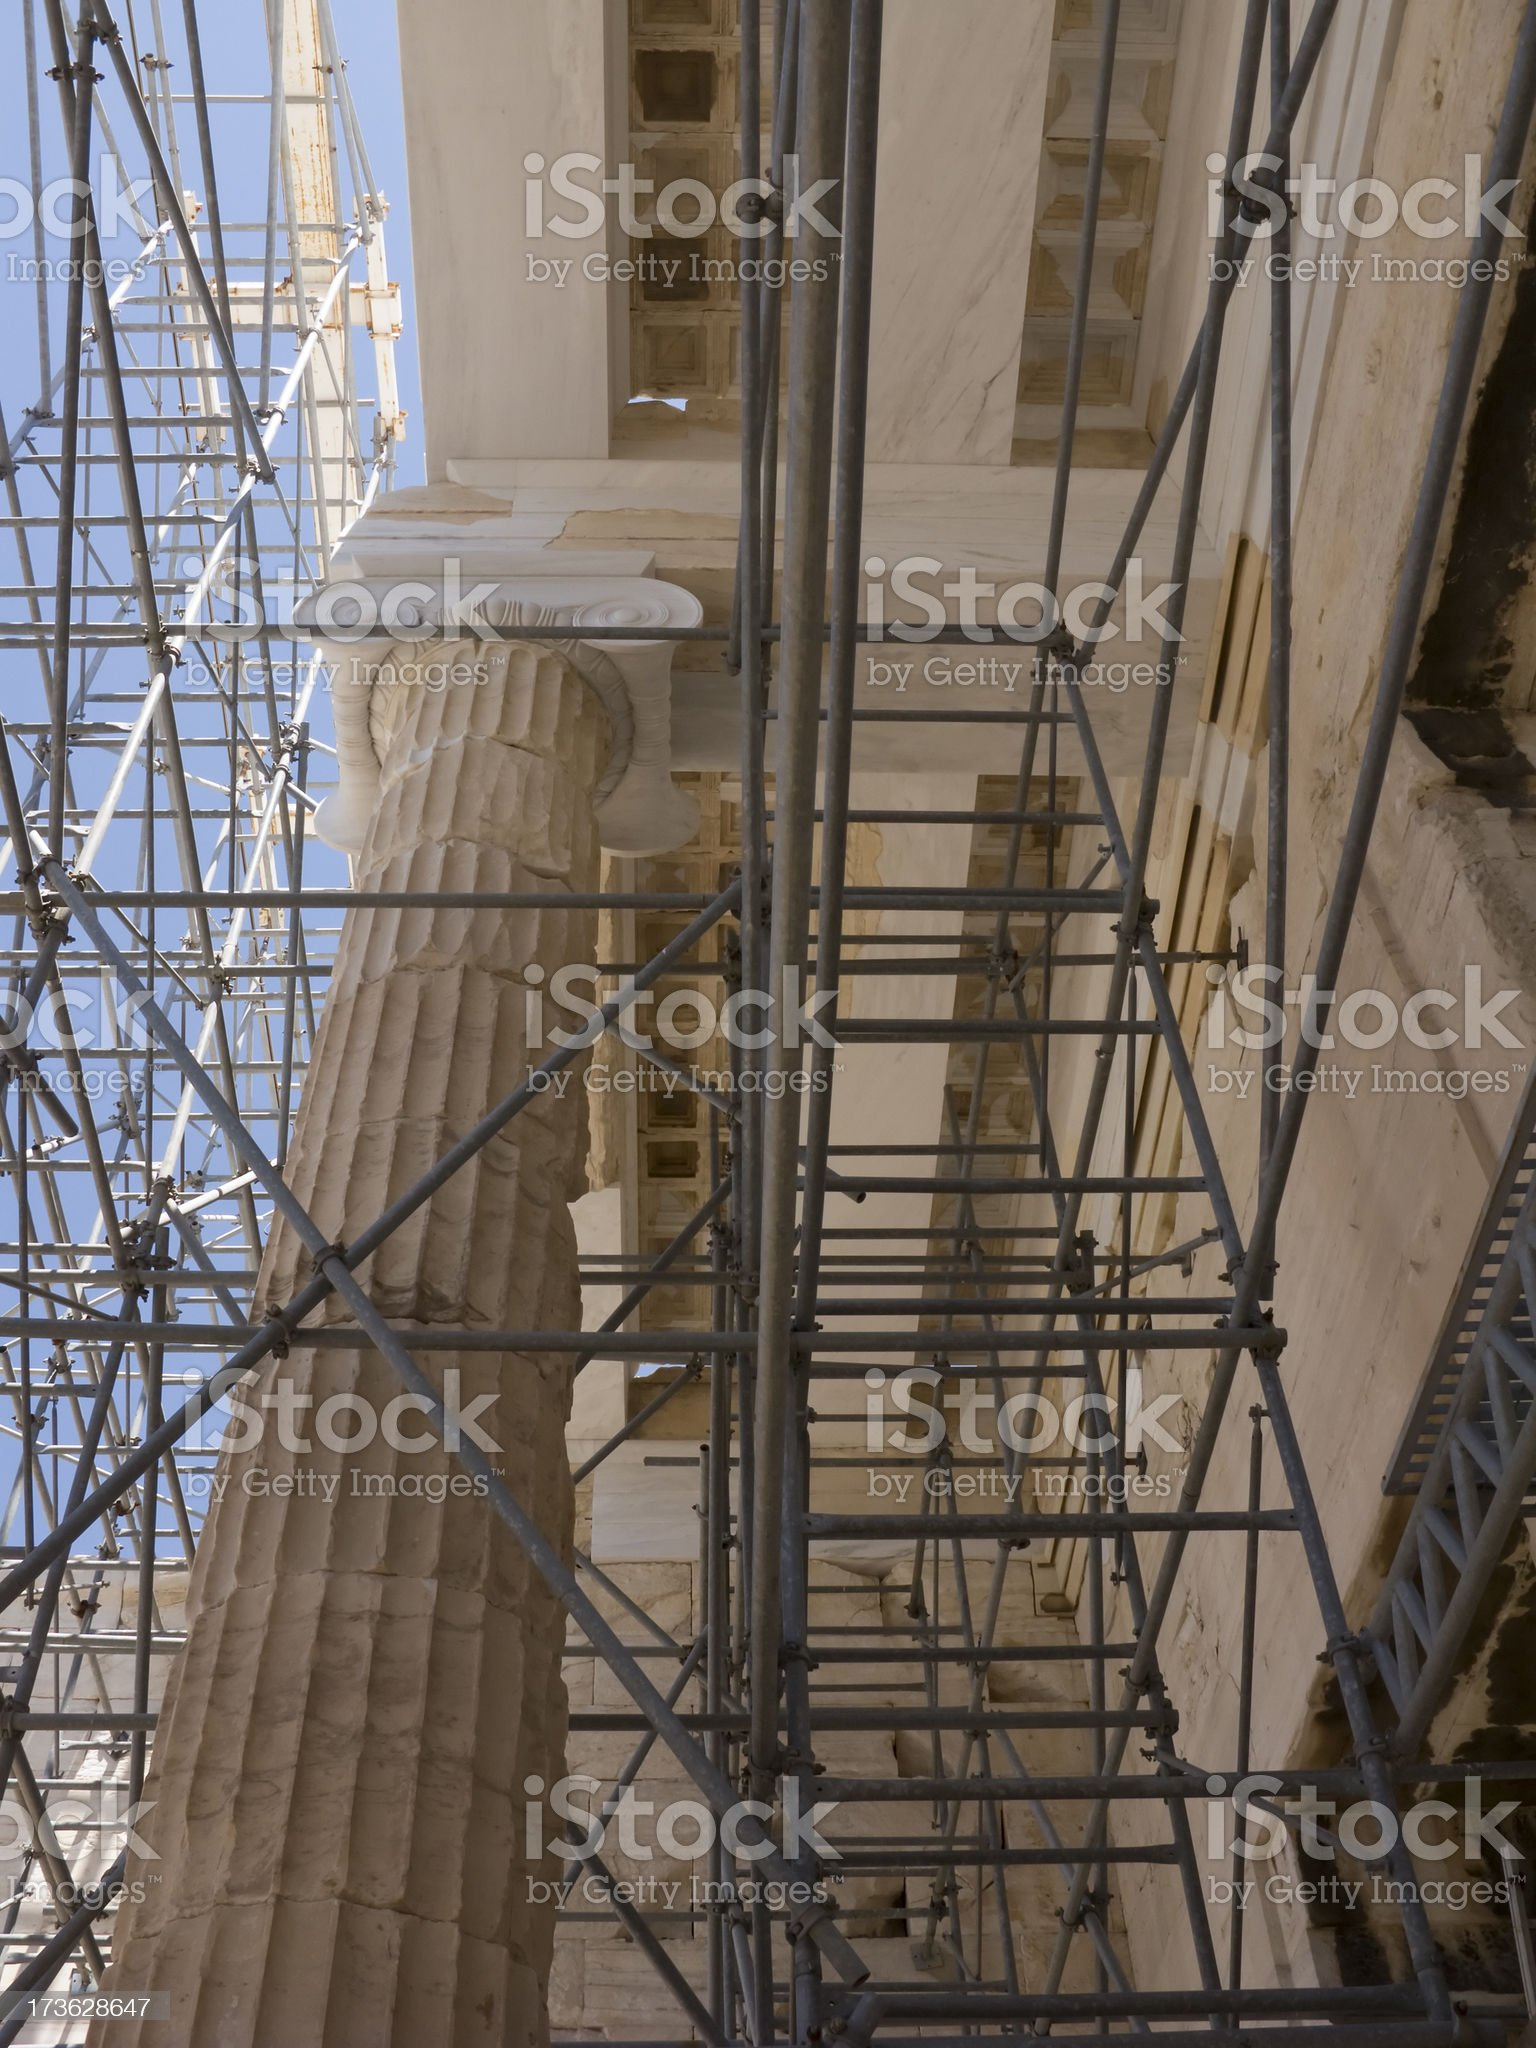 Parthenon Columns Low Angle Many Scaffolds royalty-free stock photo